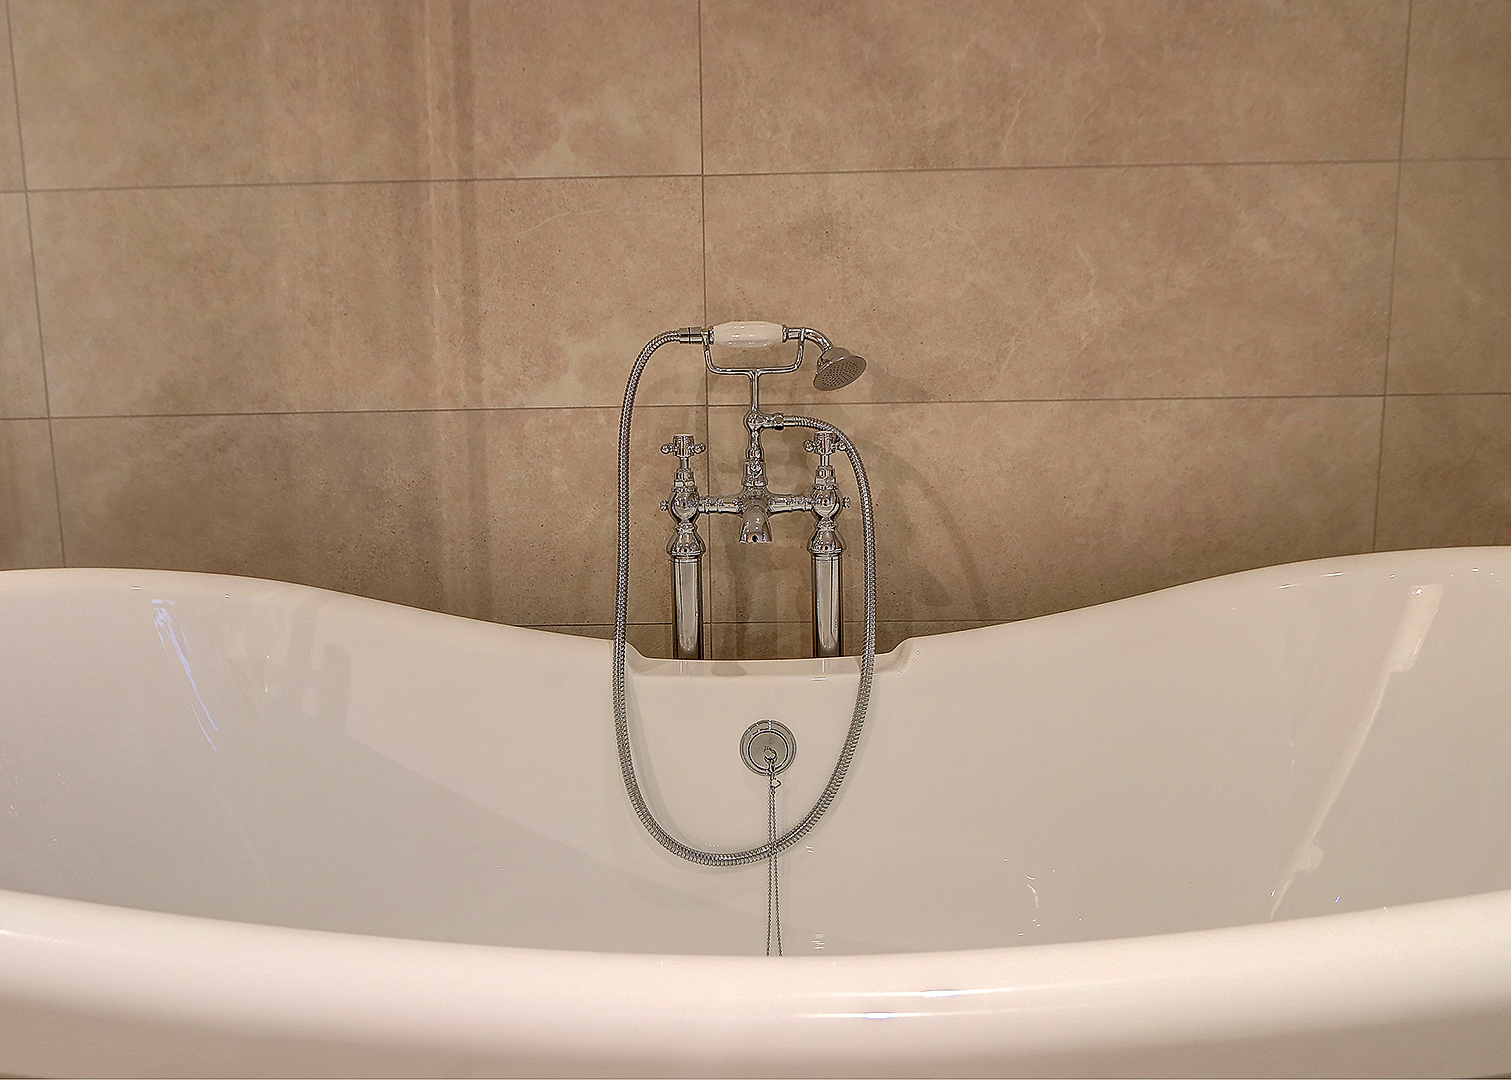 Plumbing and heating services in meath trim cavan for Plumbers bathroom renovations